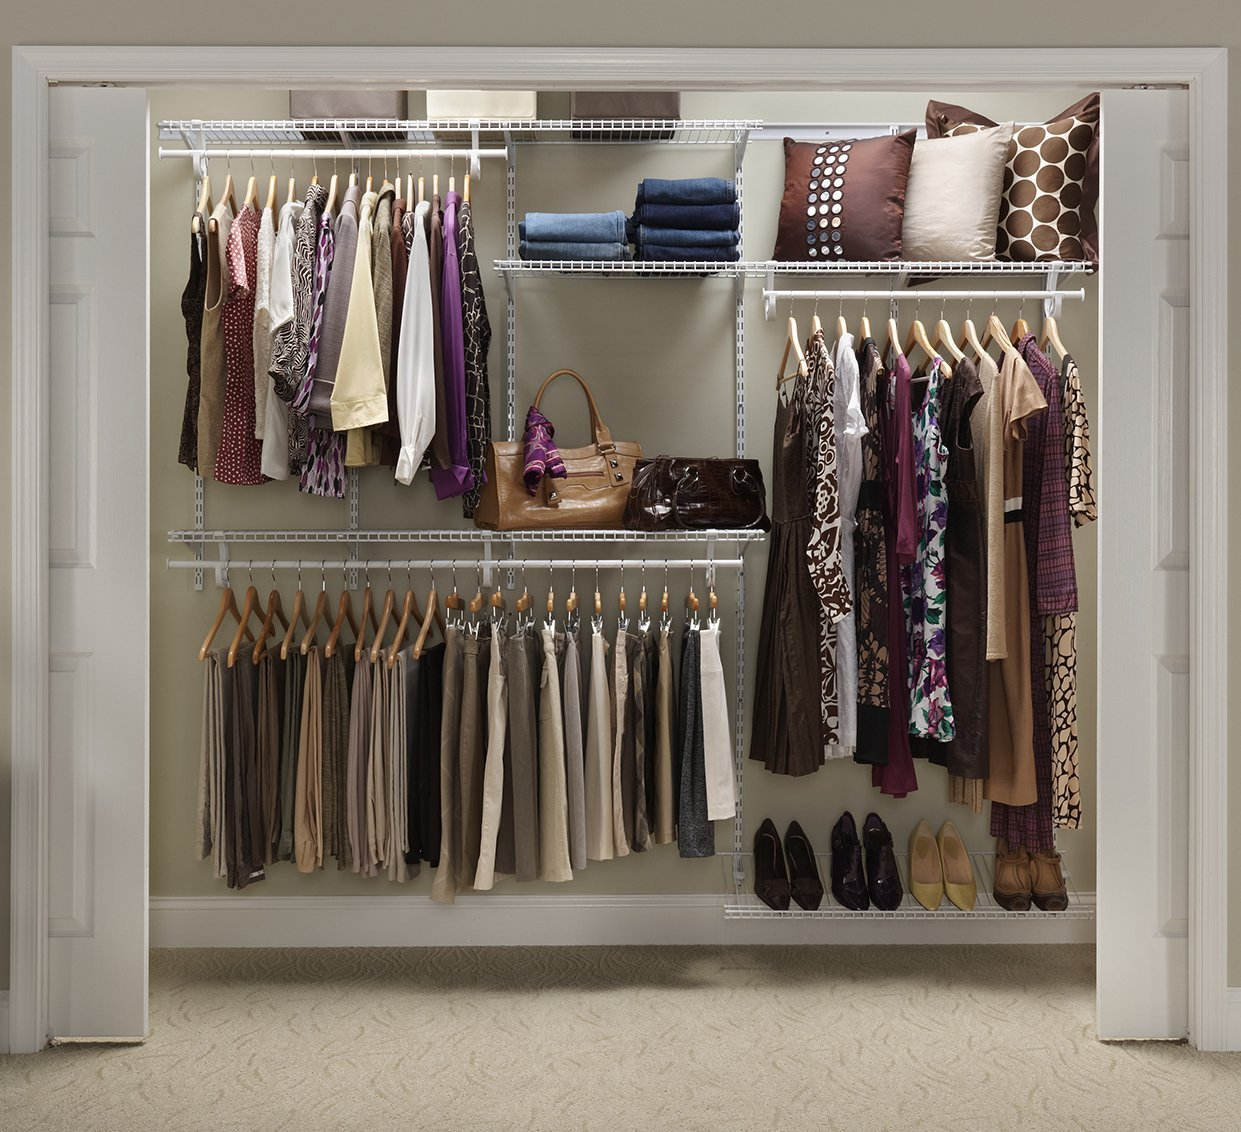 Closetmaid Adjustable Closet Organizer 5 Feet To 8 Feet: pictures of closet organizers